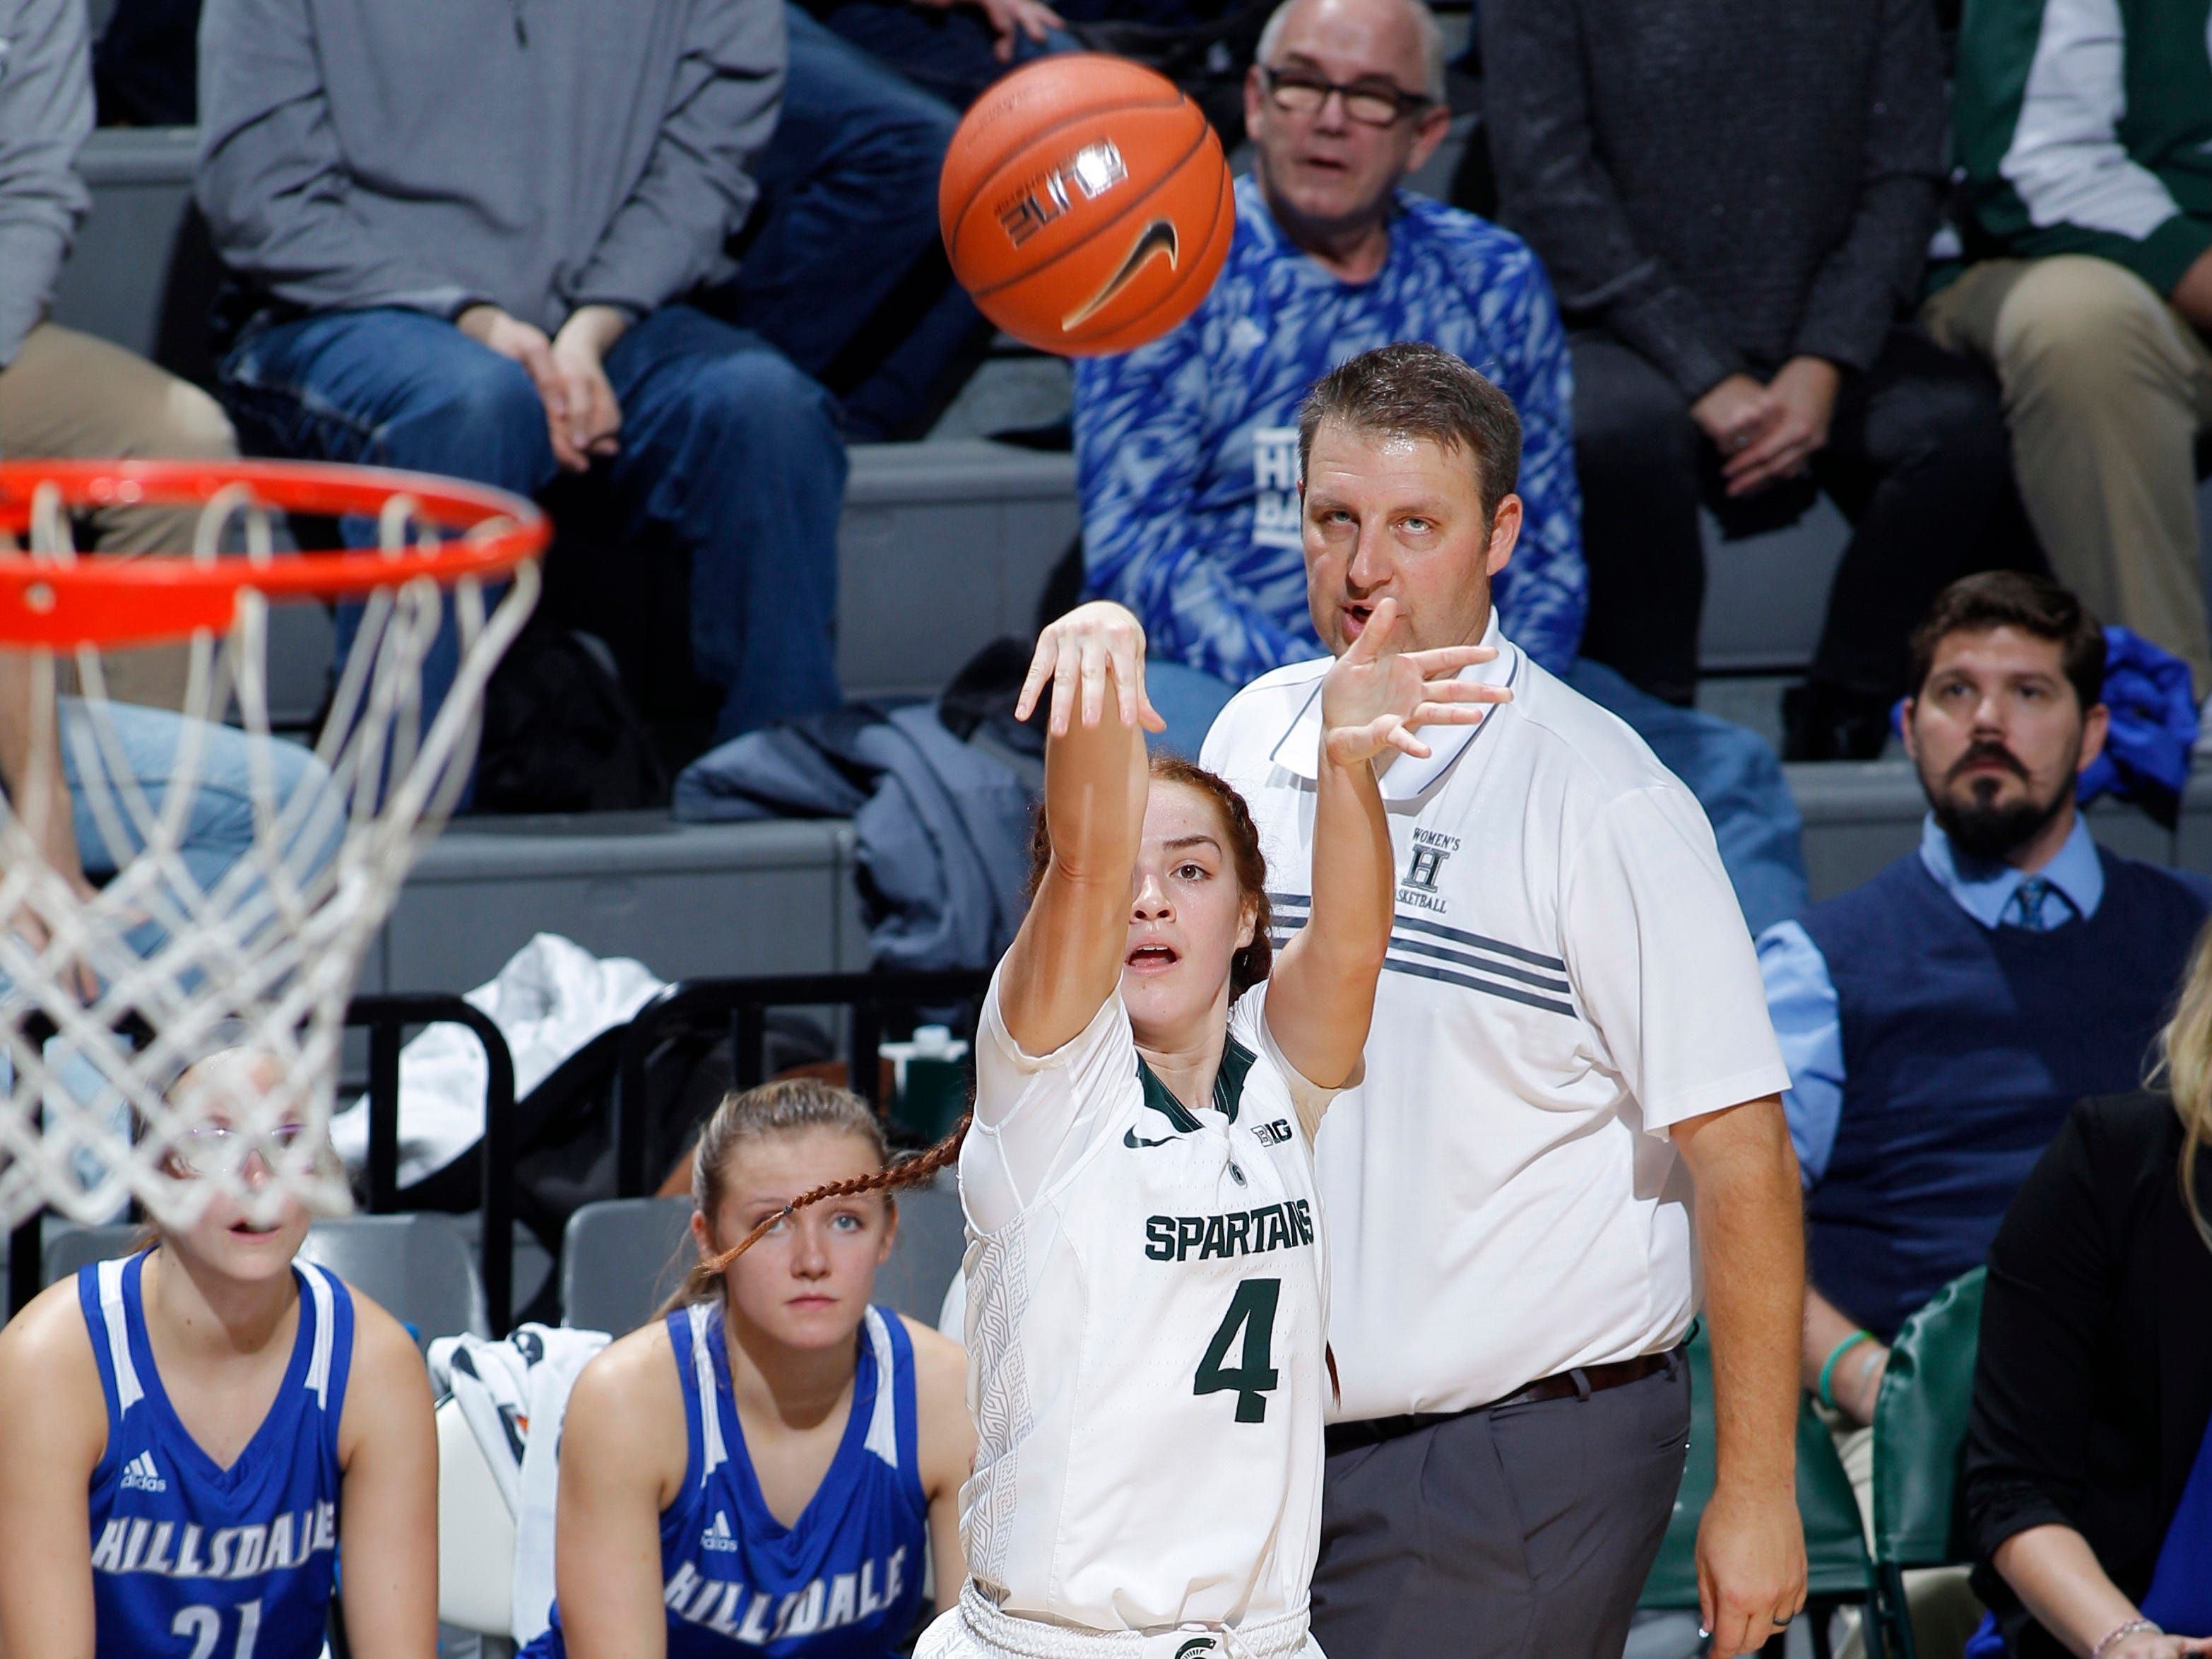 Michigan State's Taryn McCutcheon shoots a 3-pointer against Hillsdale, Thursday, Nov. 1, 2018, in East Lansing, Mich.